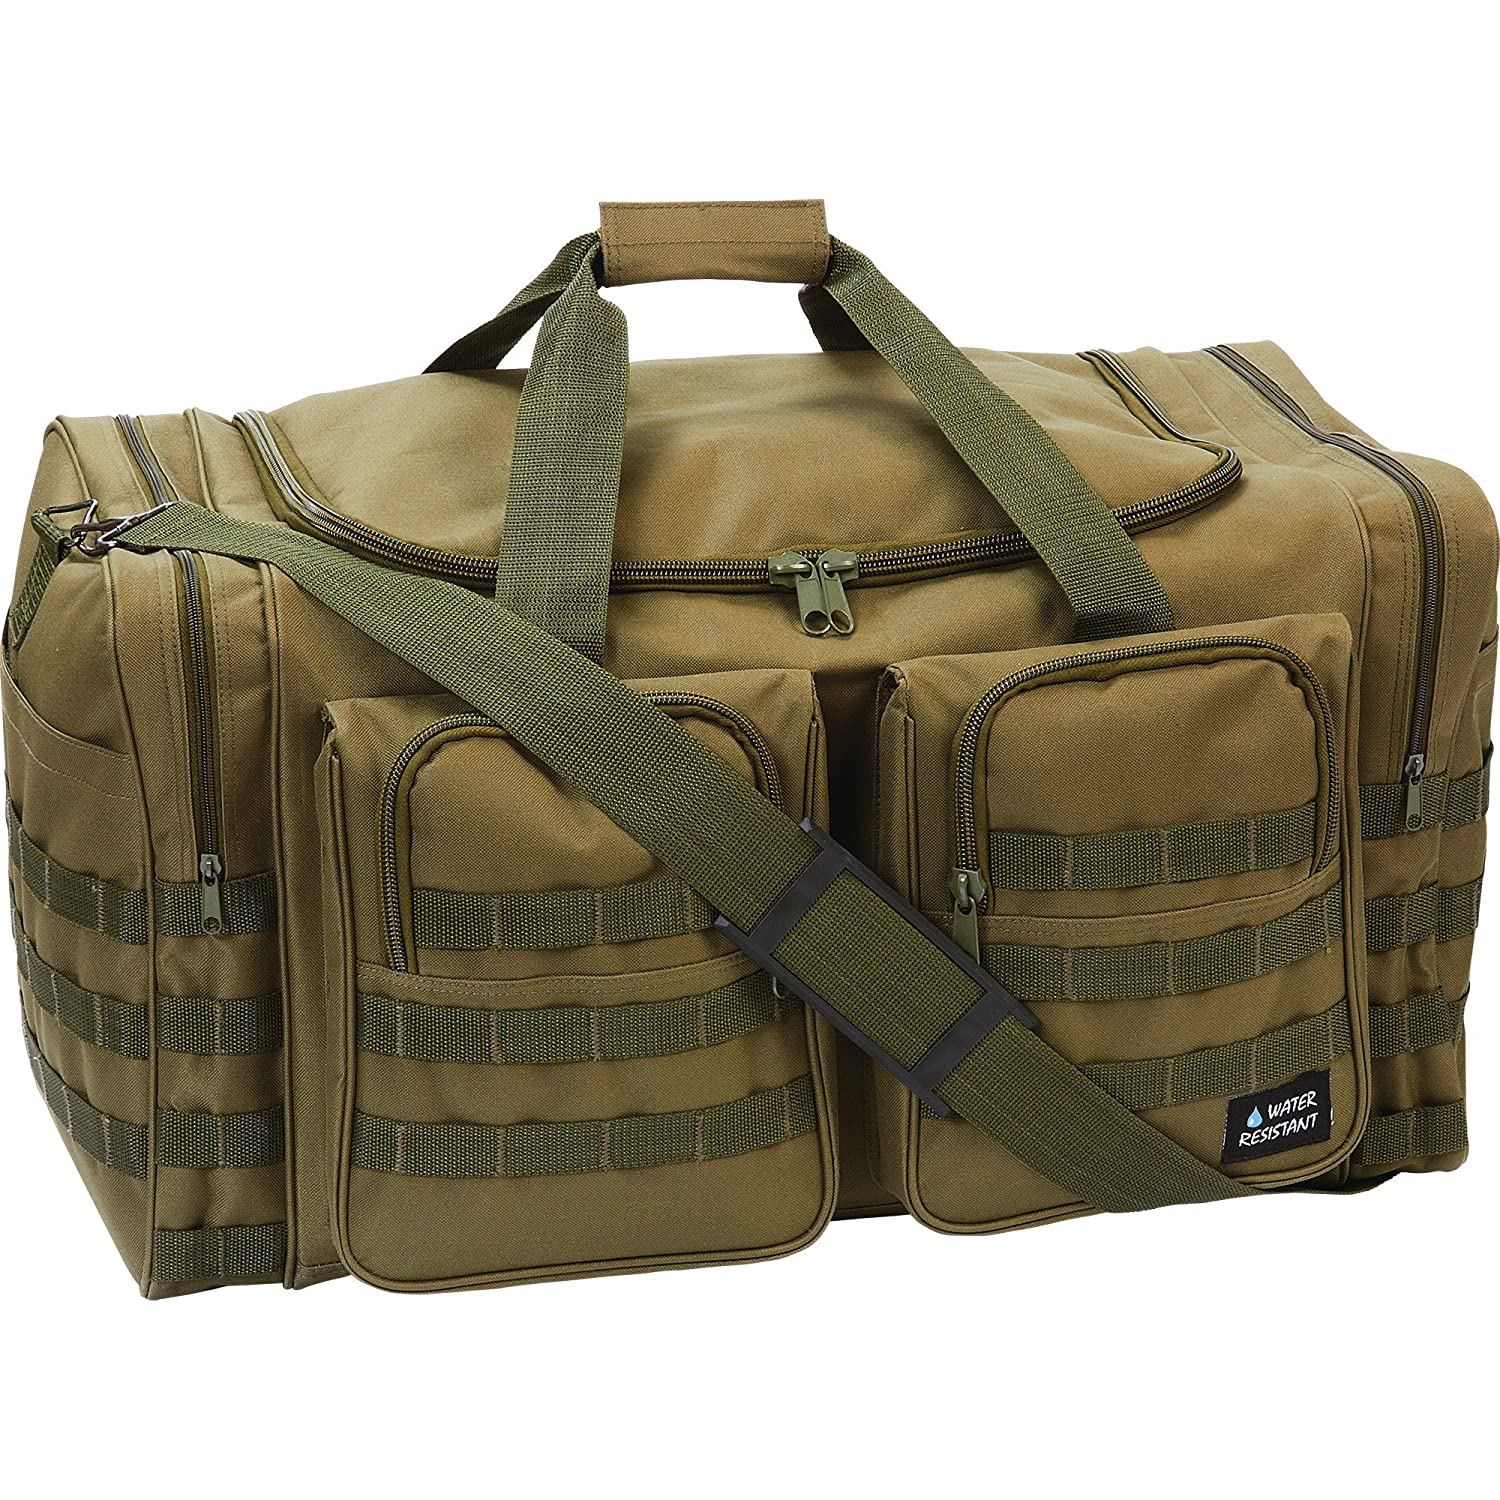 Extreme Pak&Trade; Tm 25 Tactical Tote Bag Luxury Home LUN26ADG